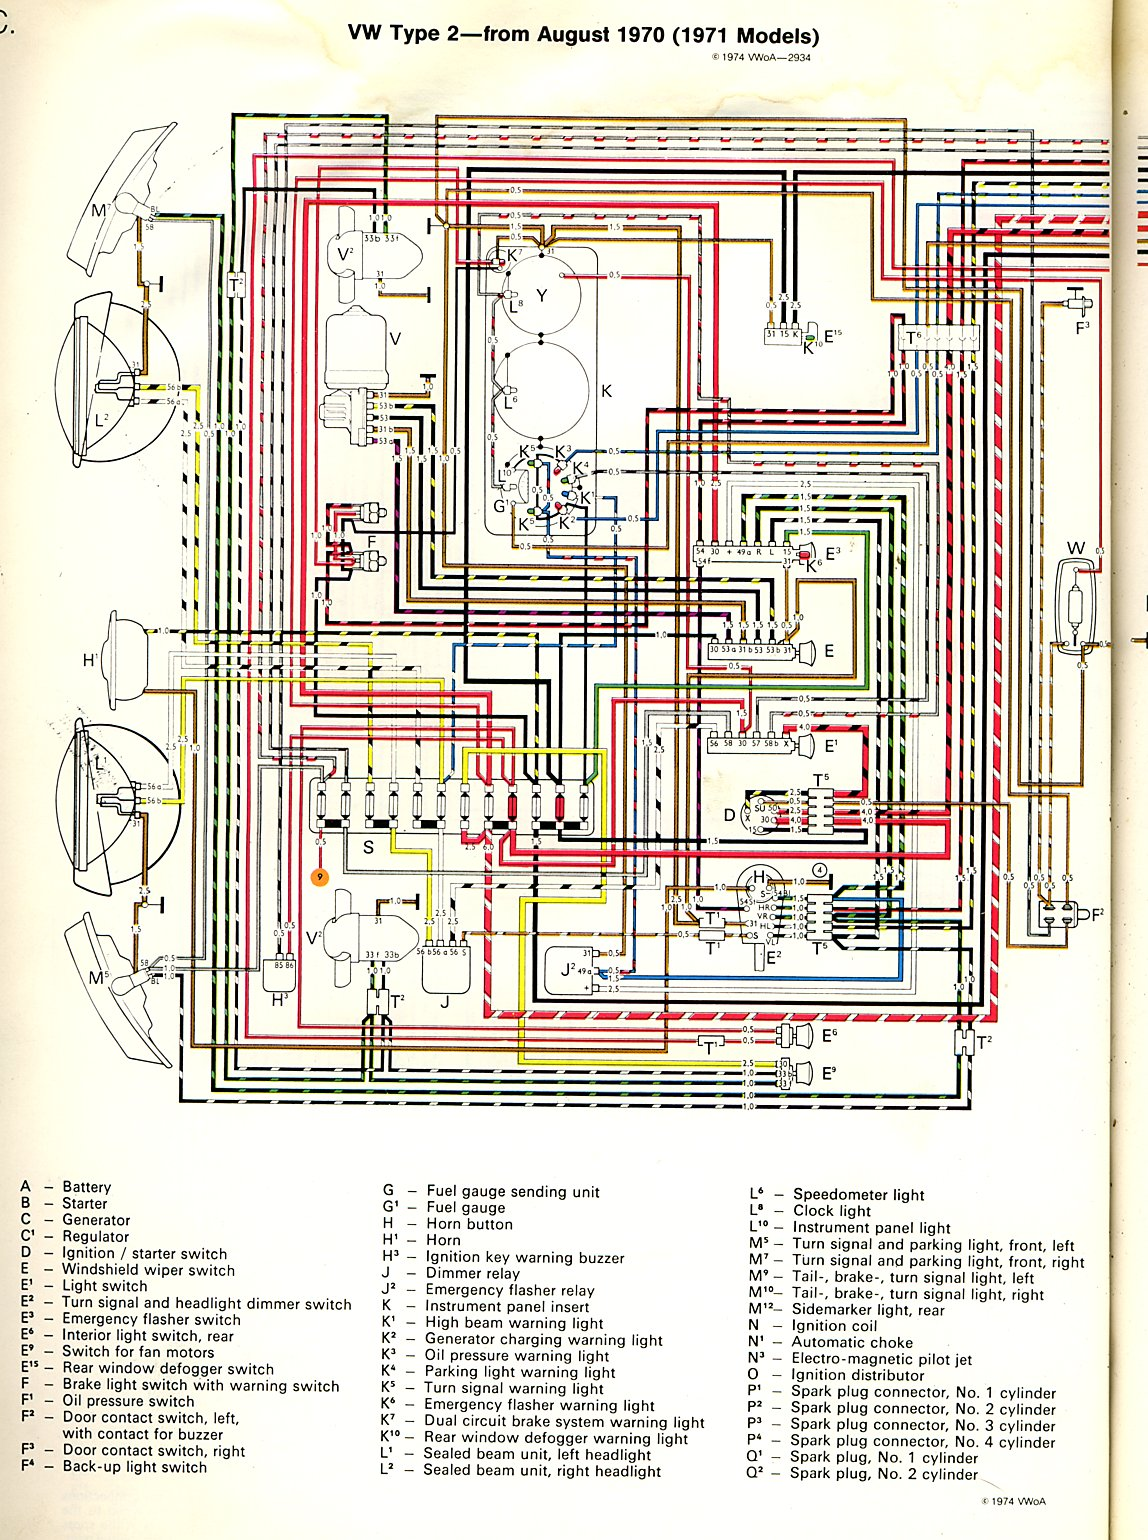 baybus_71a thesamba com type 2 wiring diagrams 1978 vw bus fuse box diagram at suagrazia.org